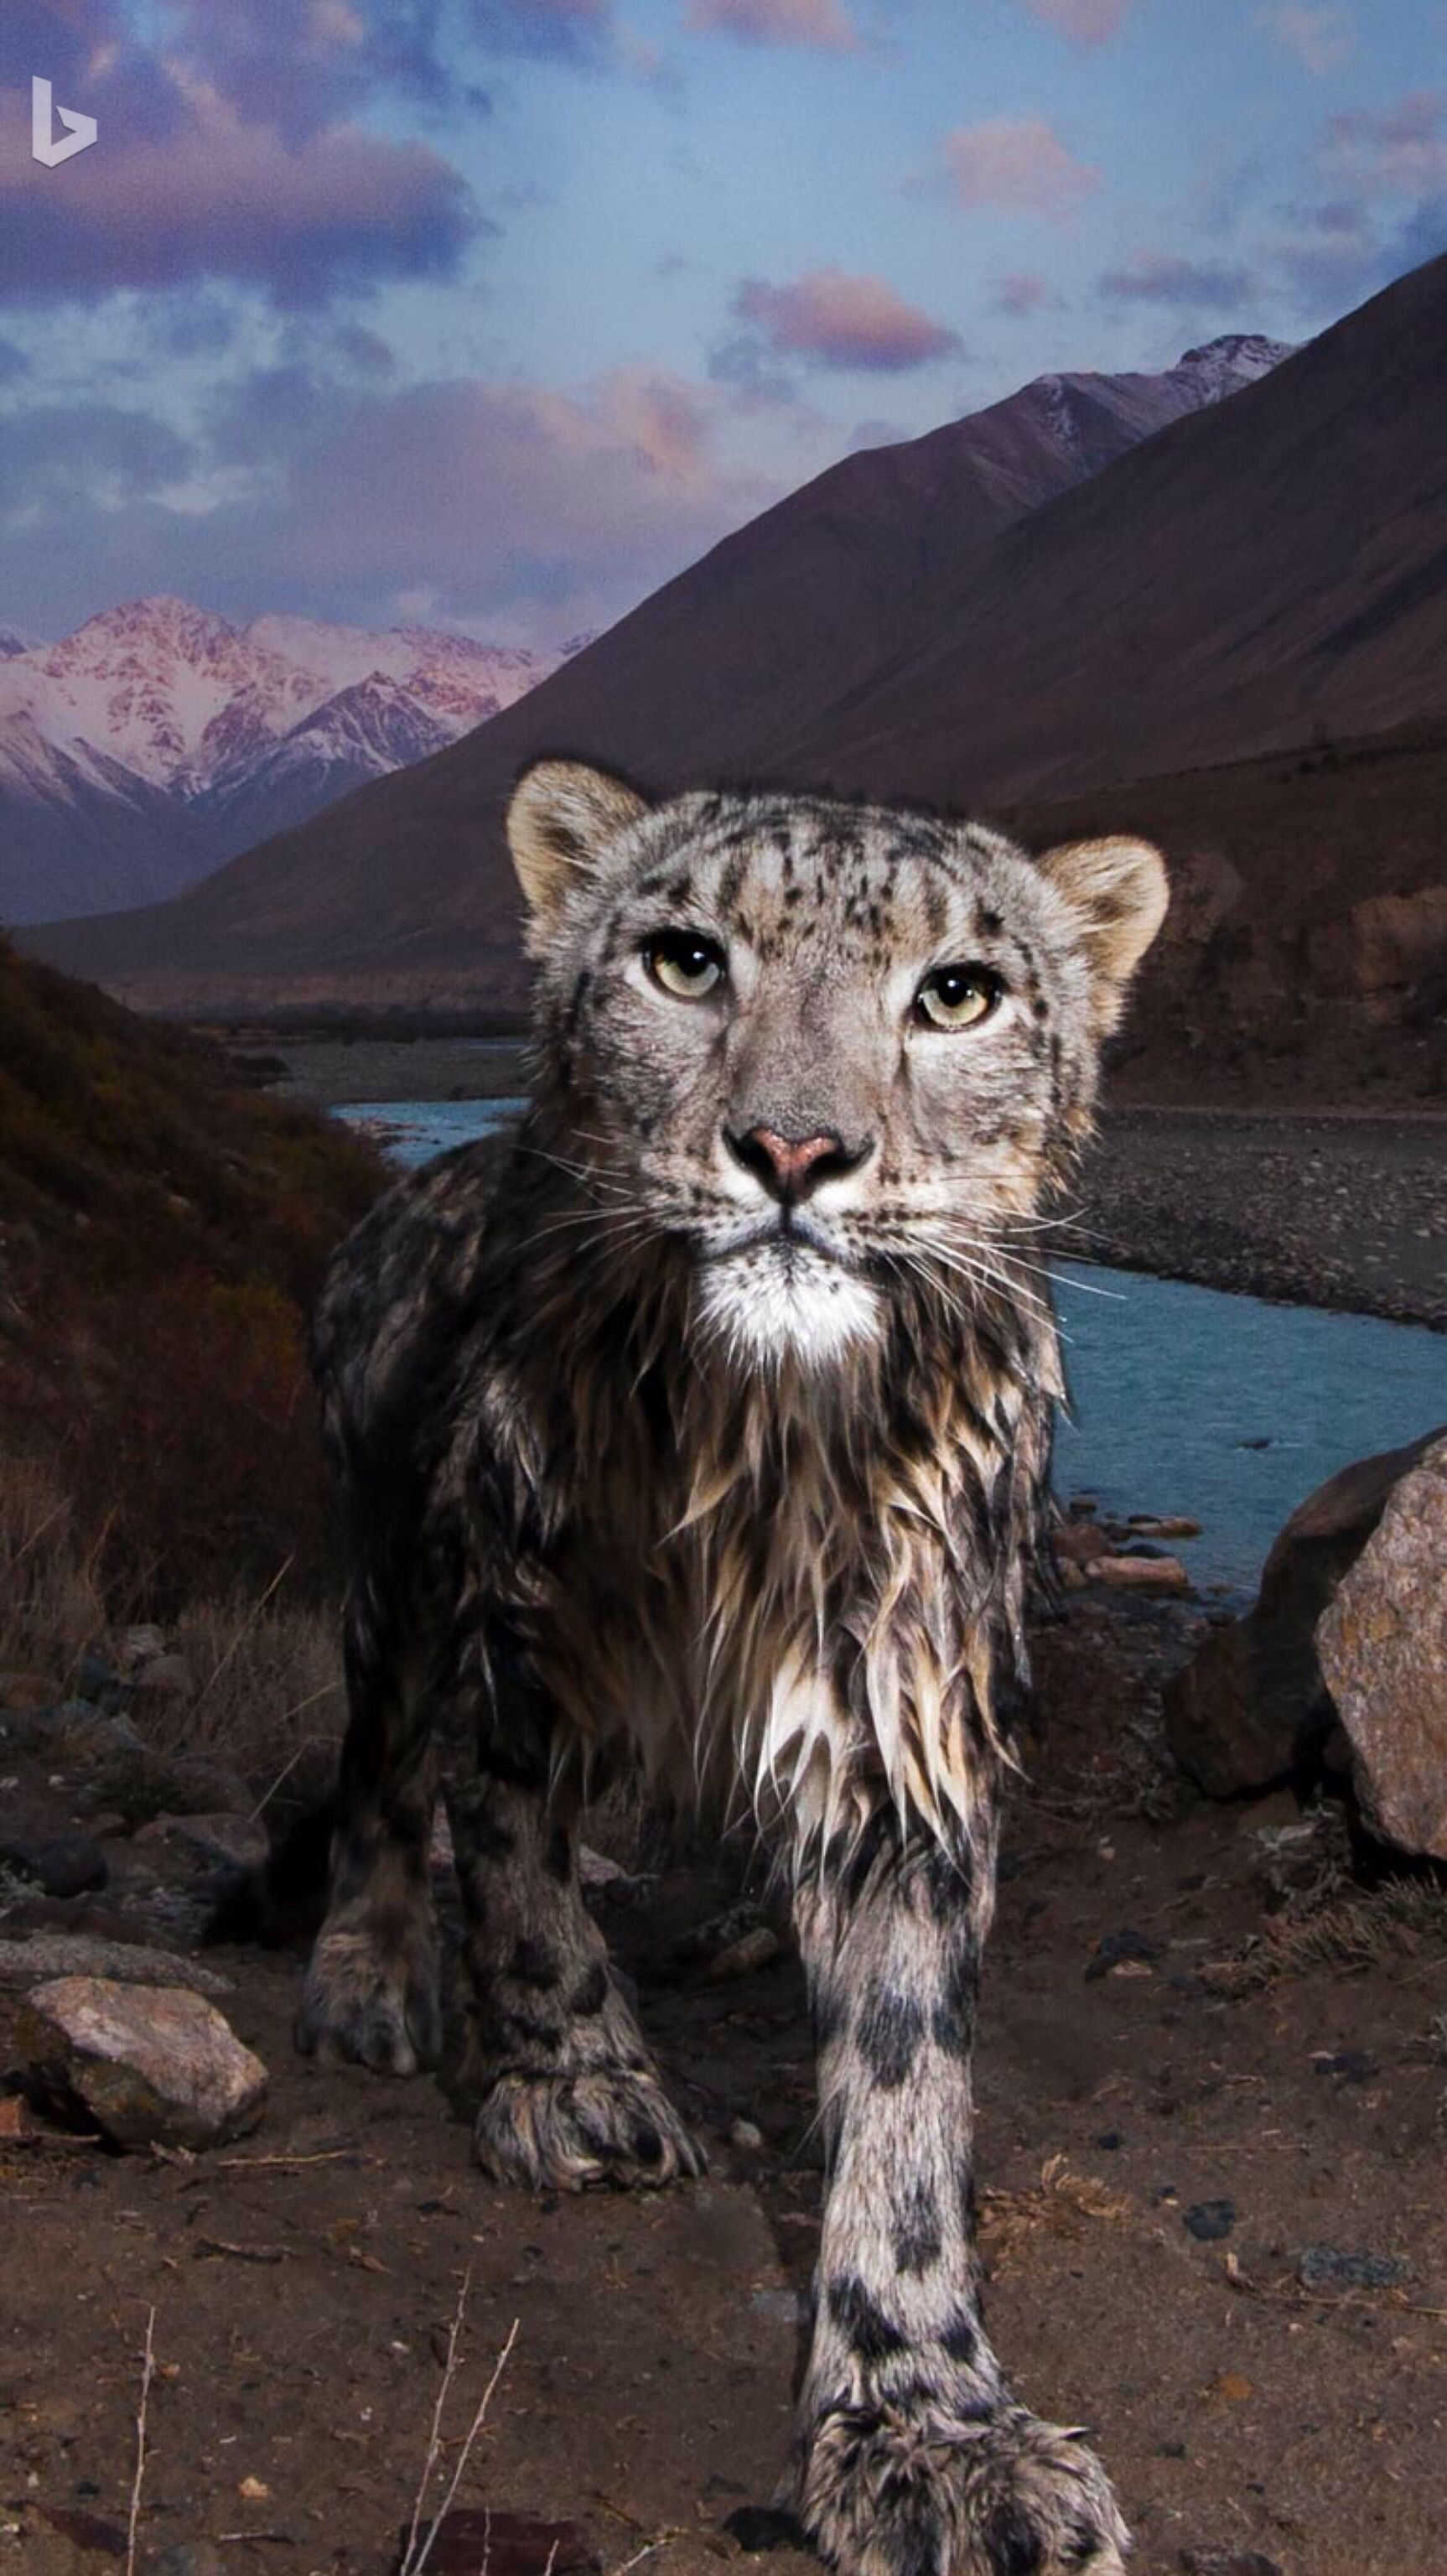 Snow leopard in Kyrgyzstan's Tian Shan Hello, kitty! This